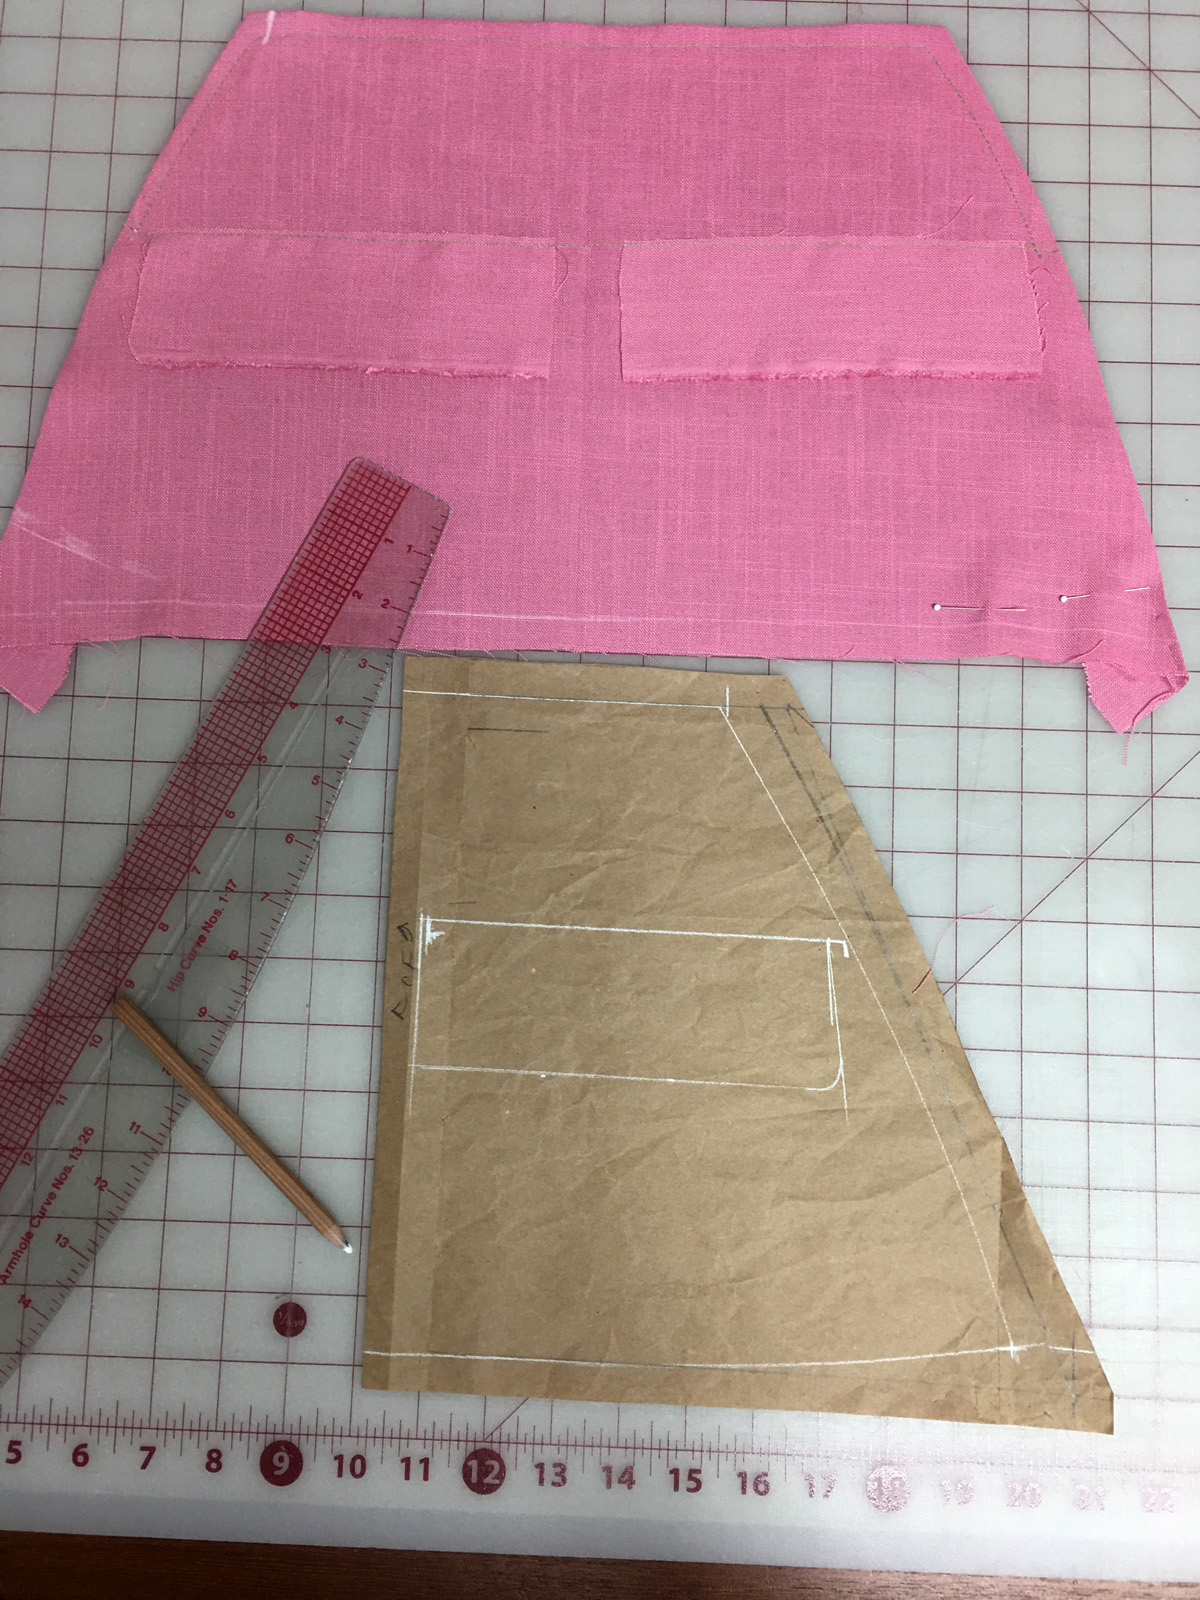 Planning the pocket flaps on the business overalls pattern